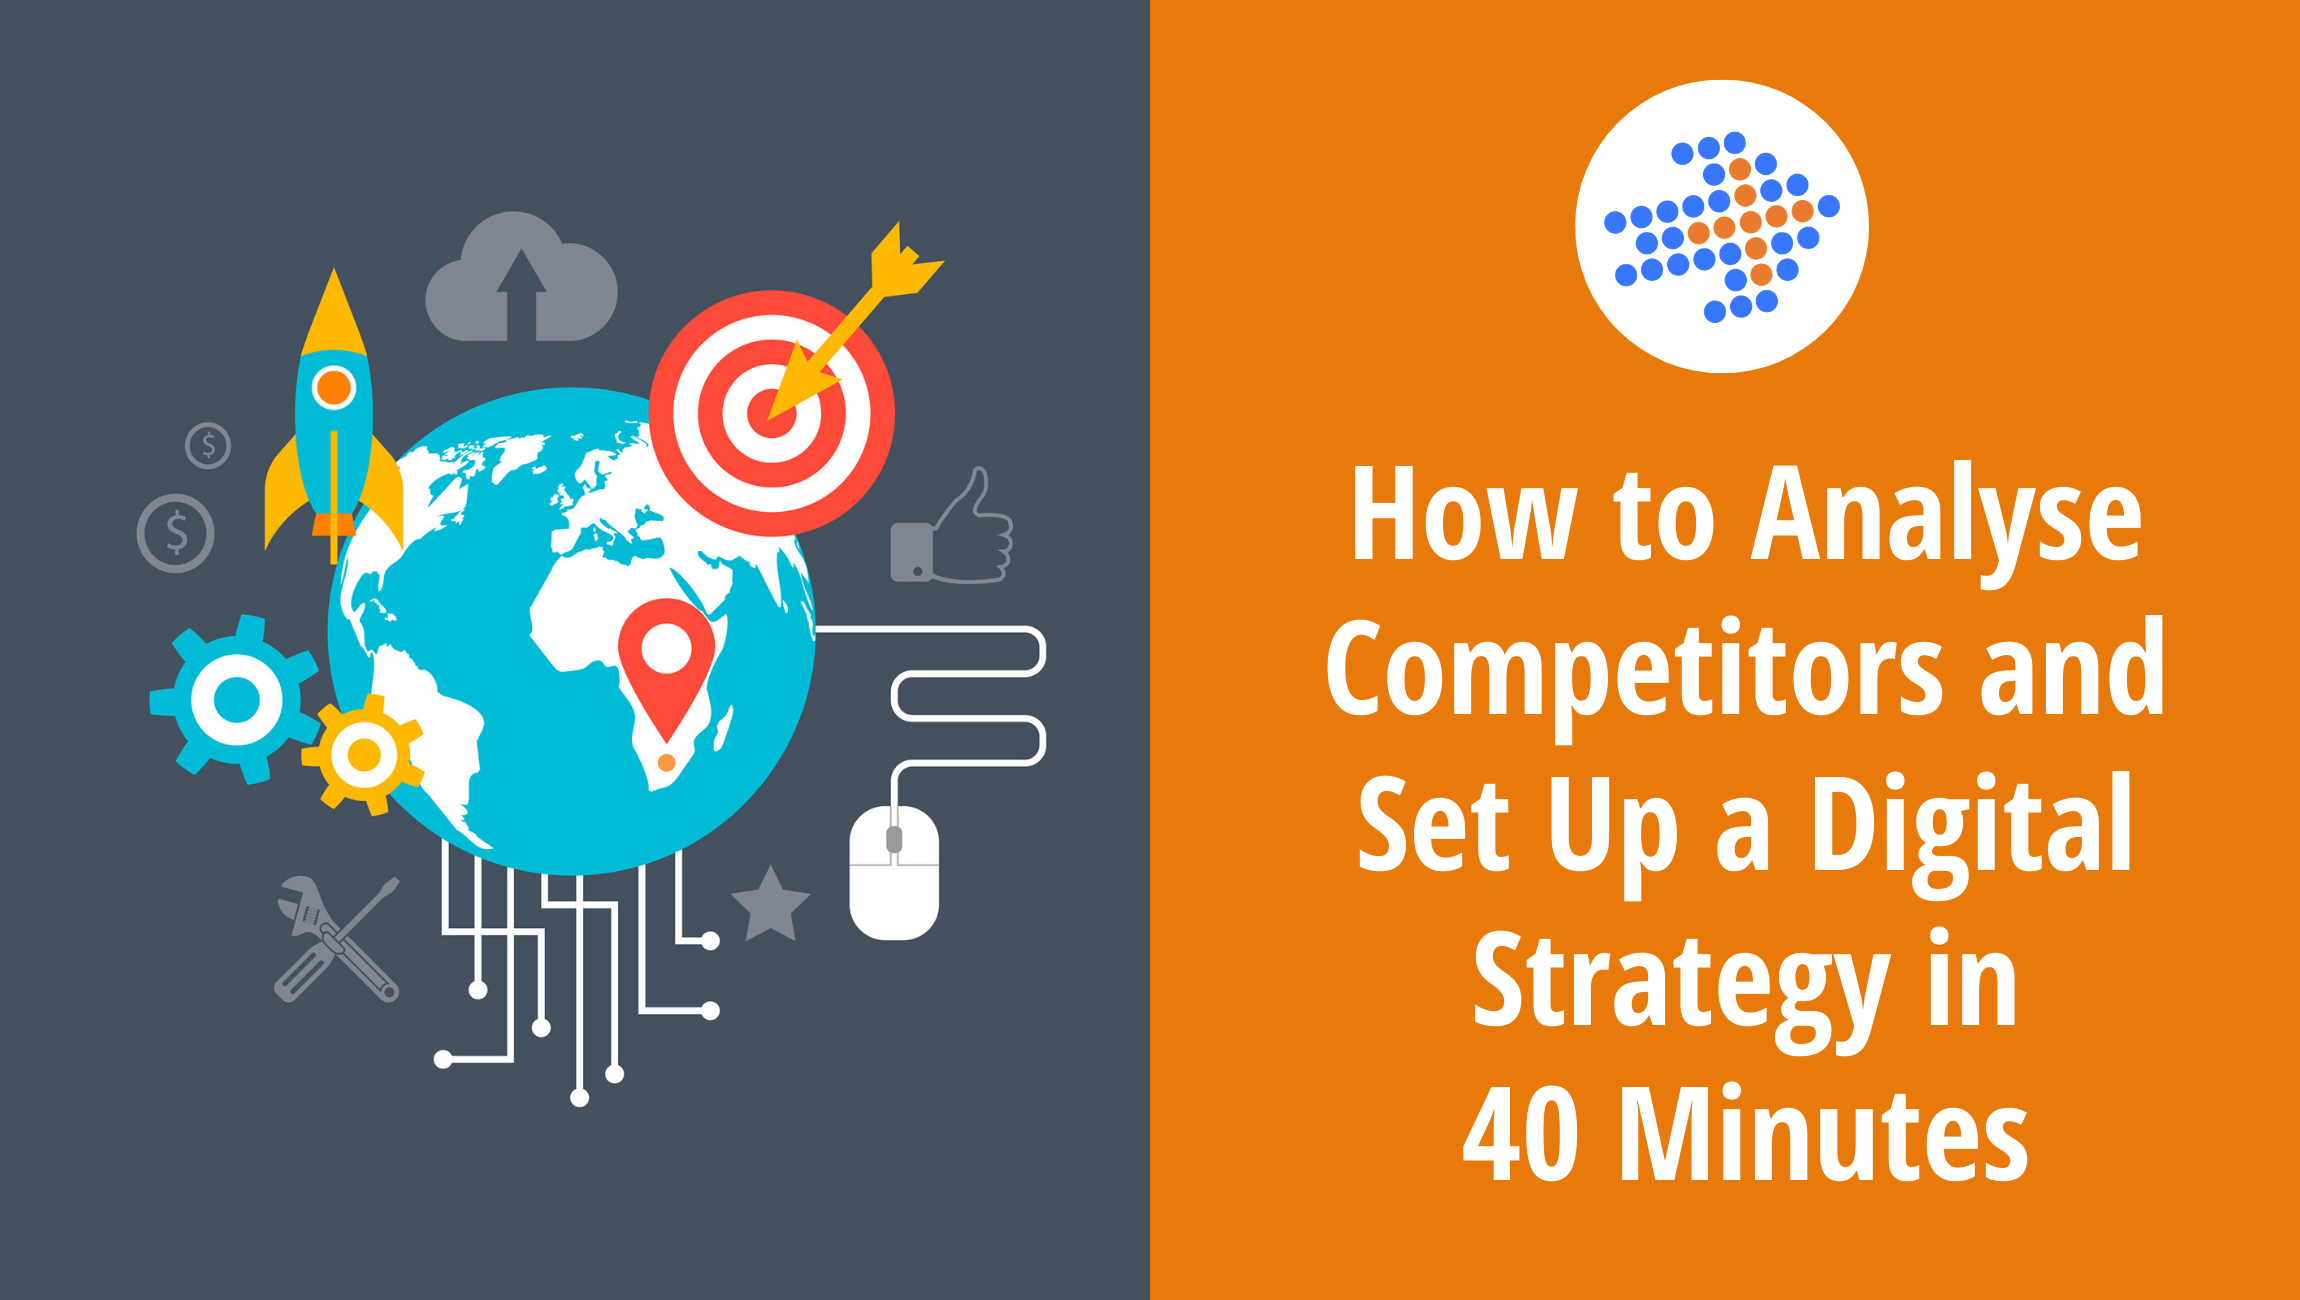 How to Analyse Competitors and Set Up a Digital Strategy in 40 Minutes